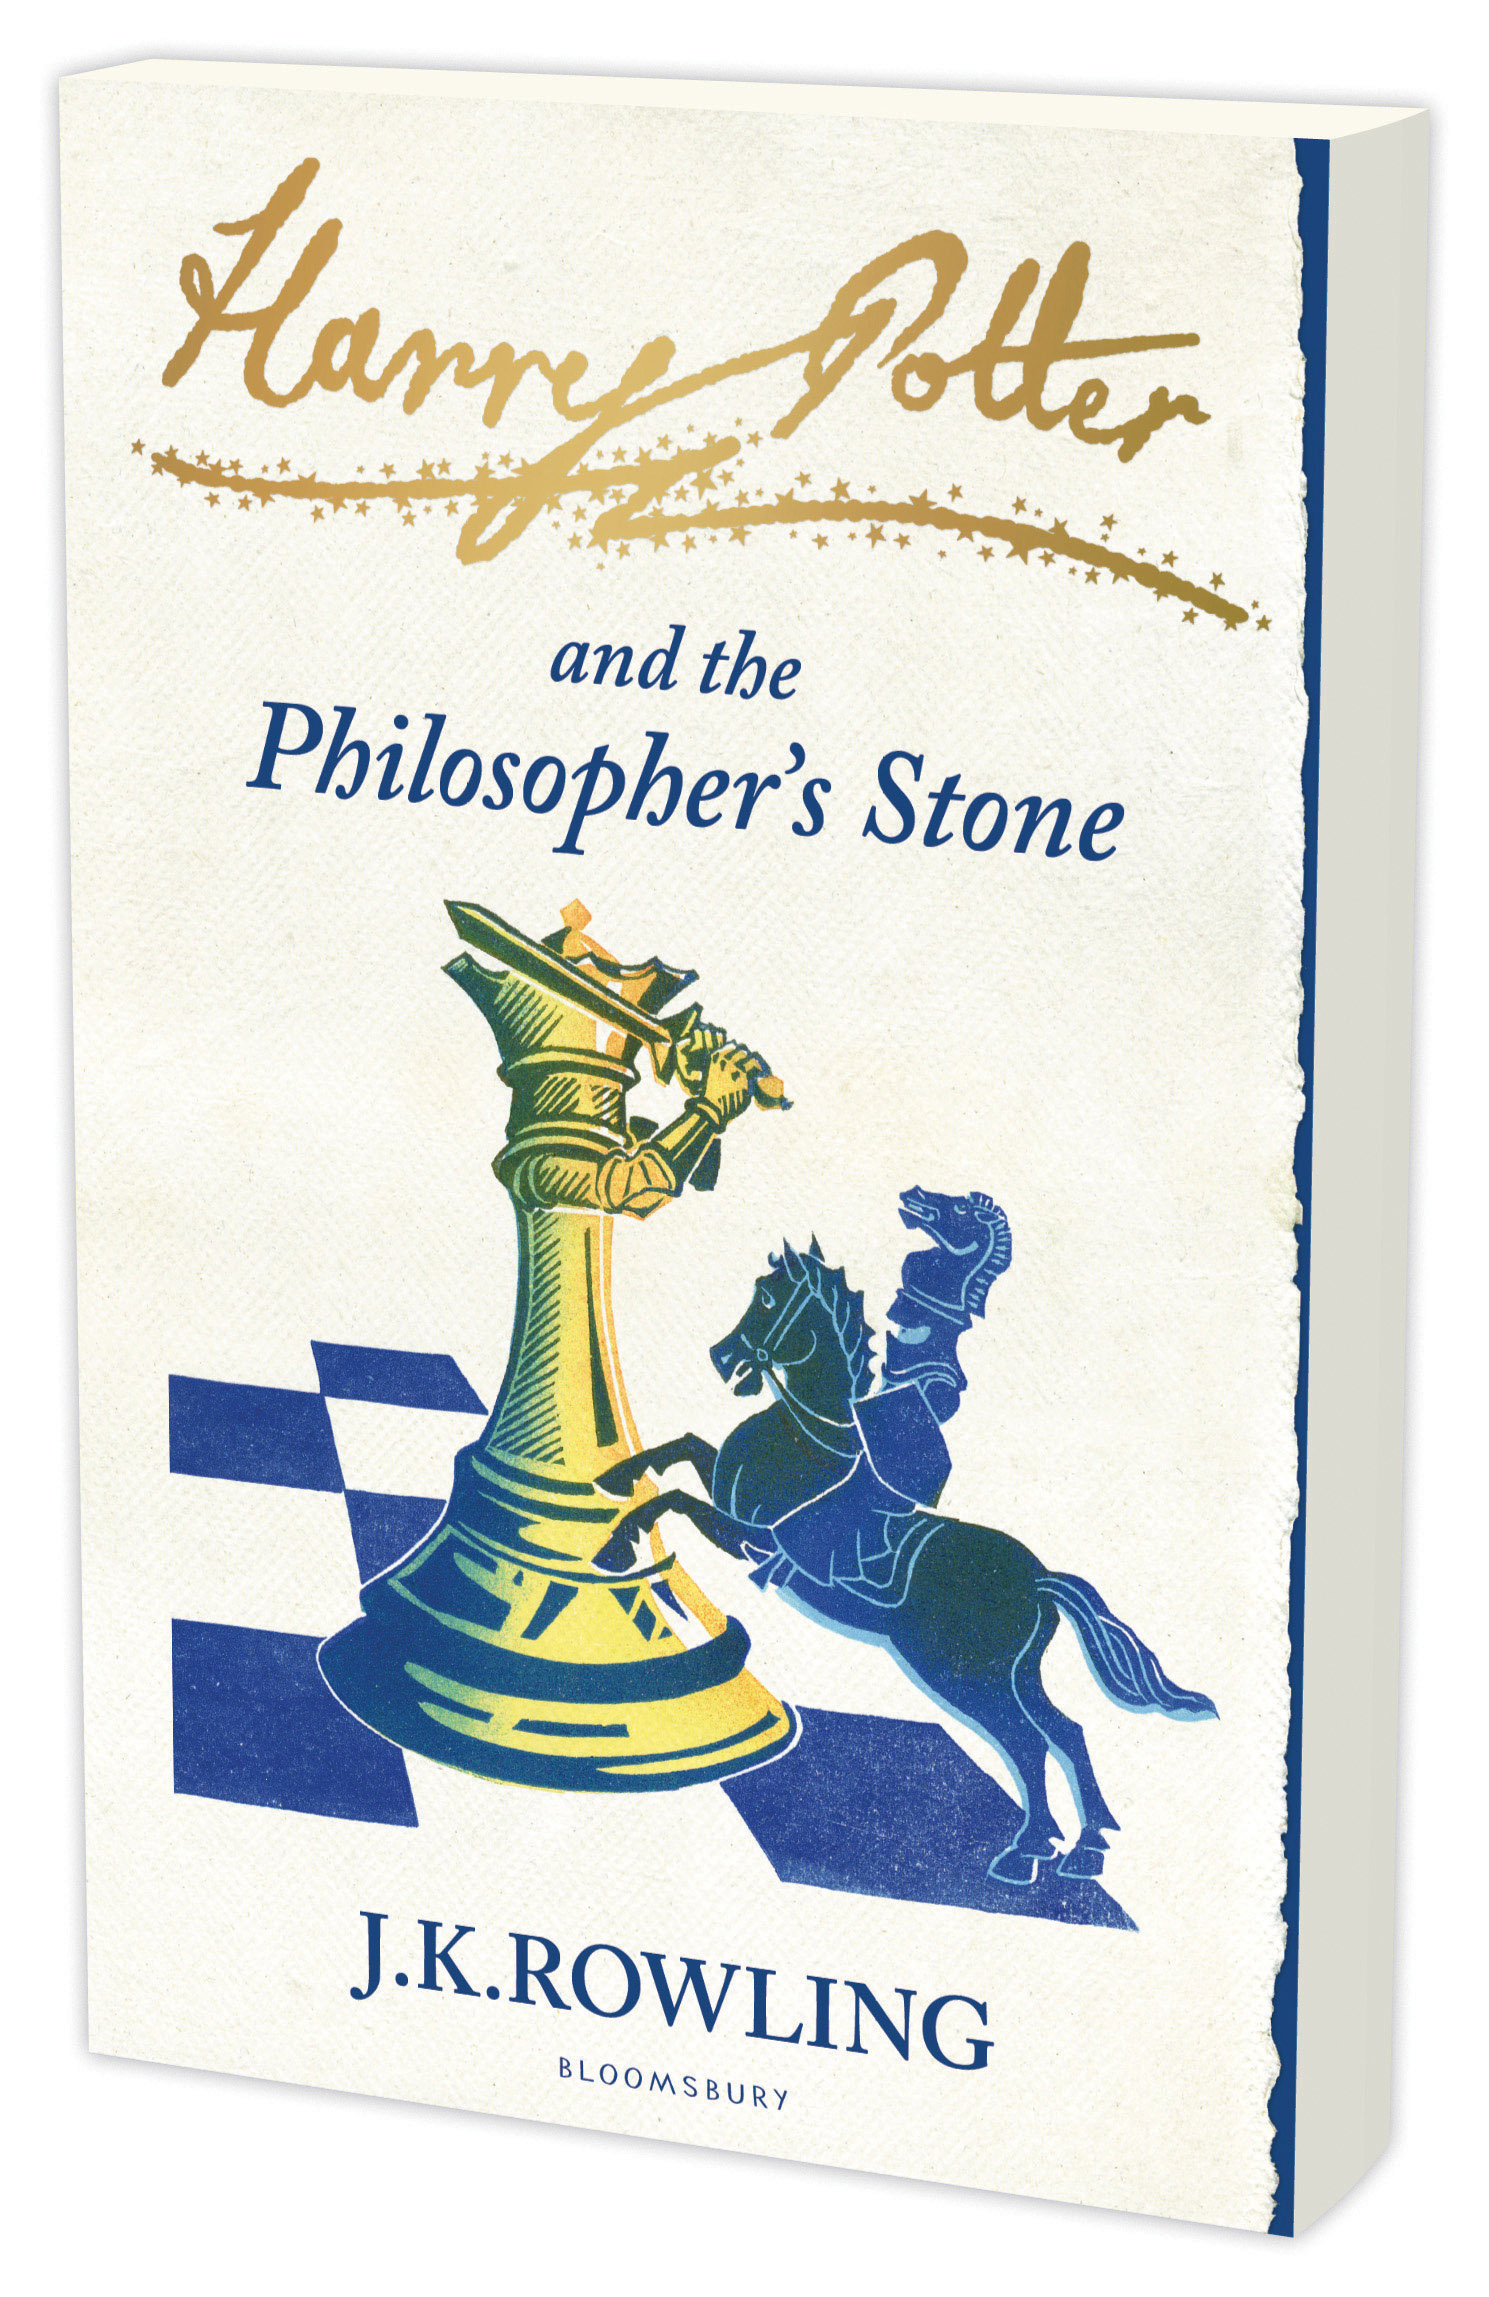 Harry Potter and the Philosopher's Stone signature edition